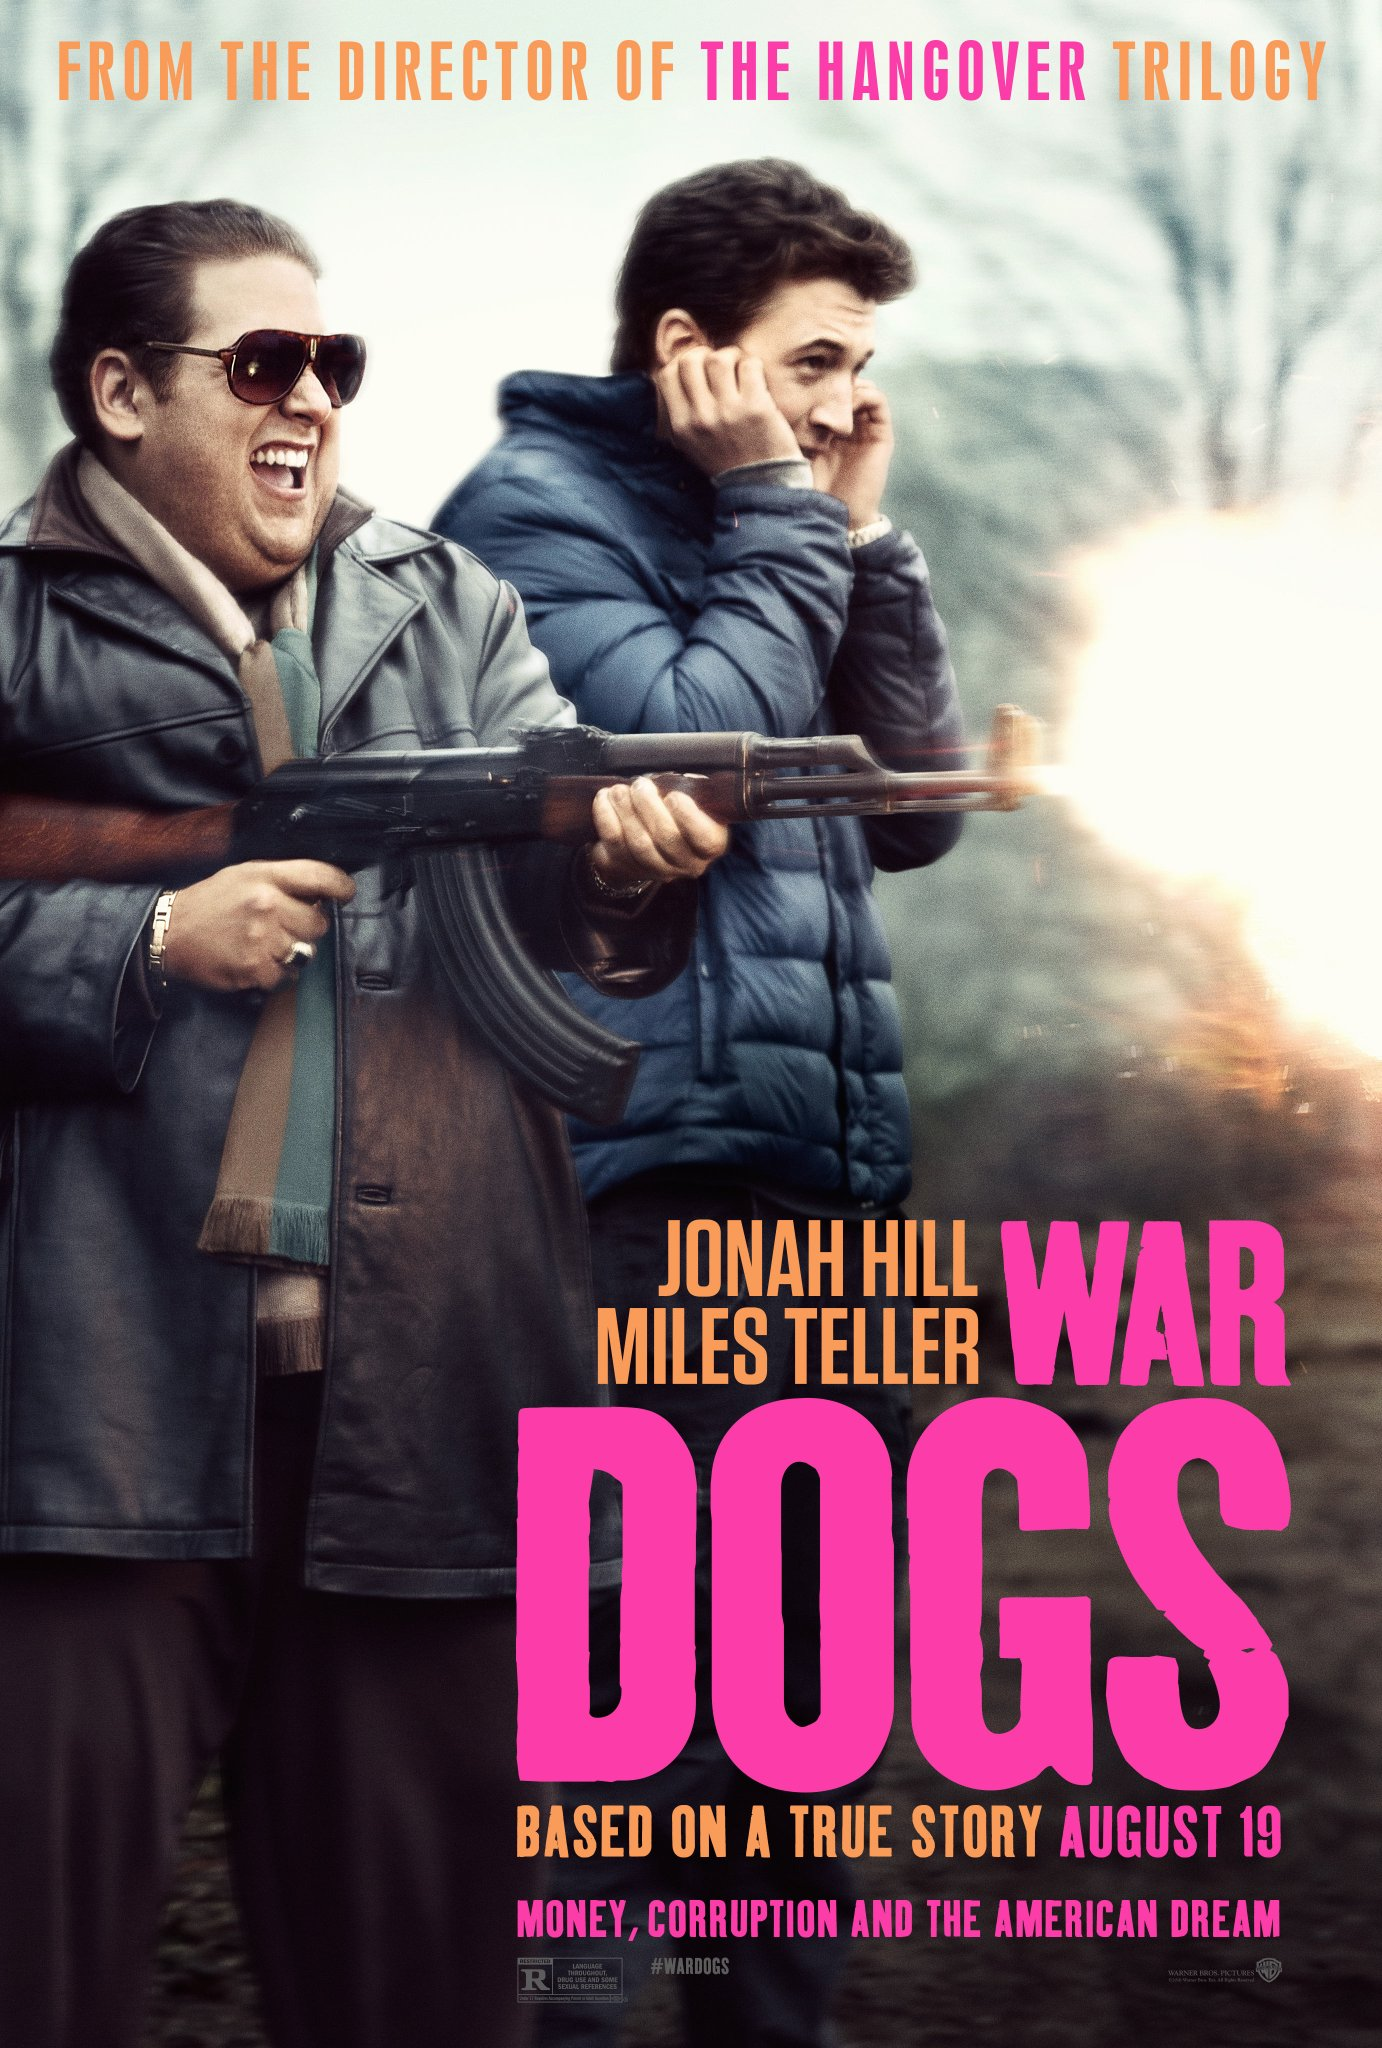 Free Cinema Tickets To See War Dogs